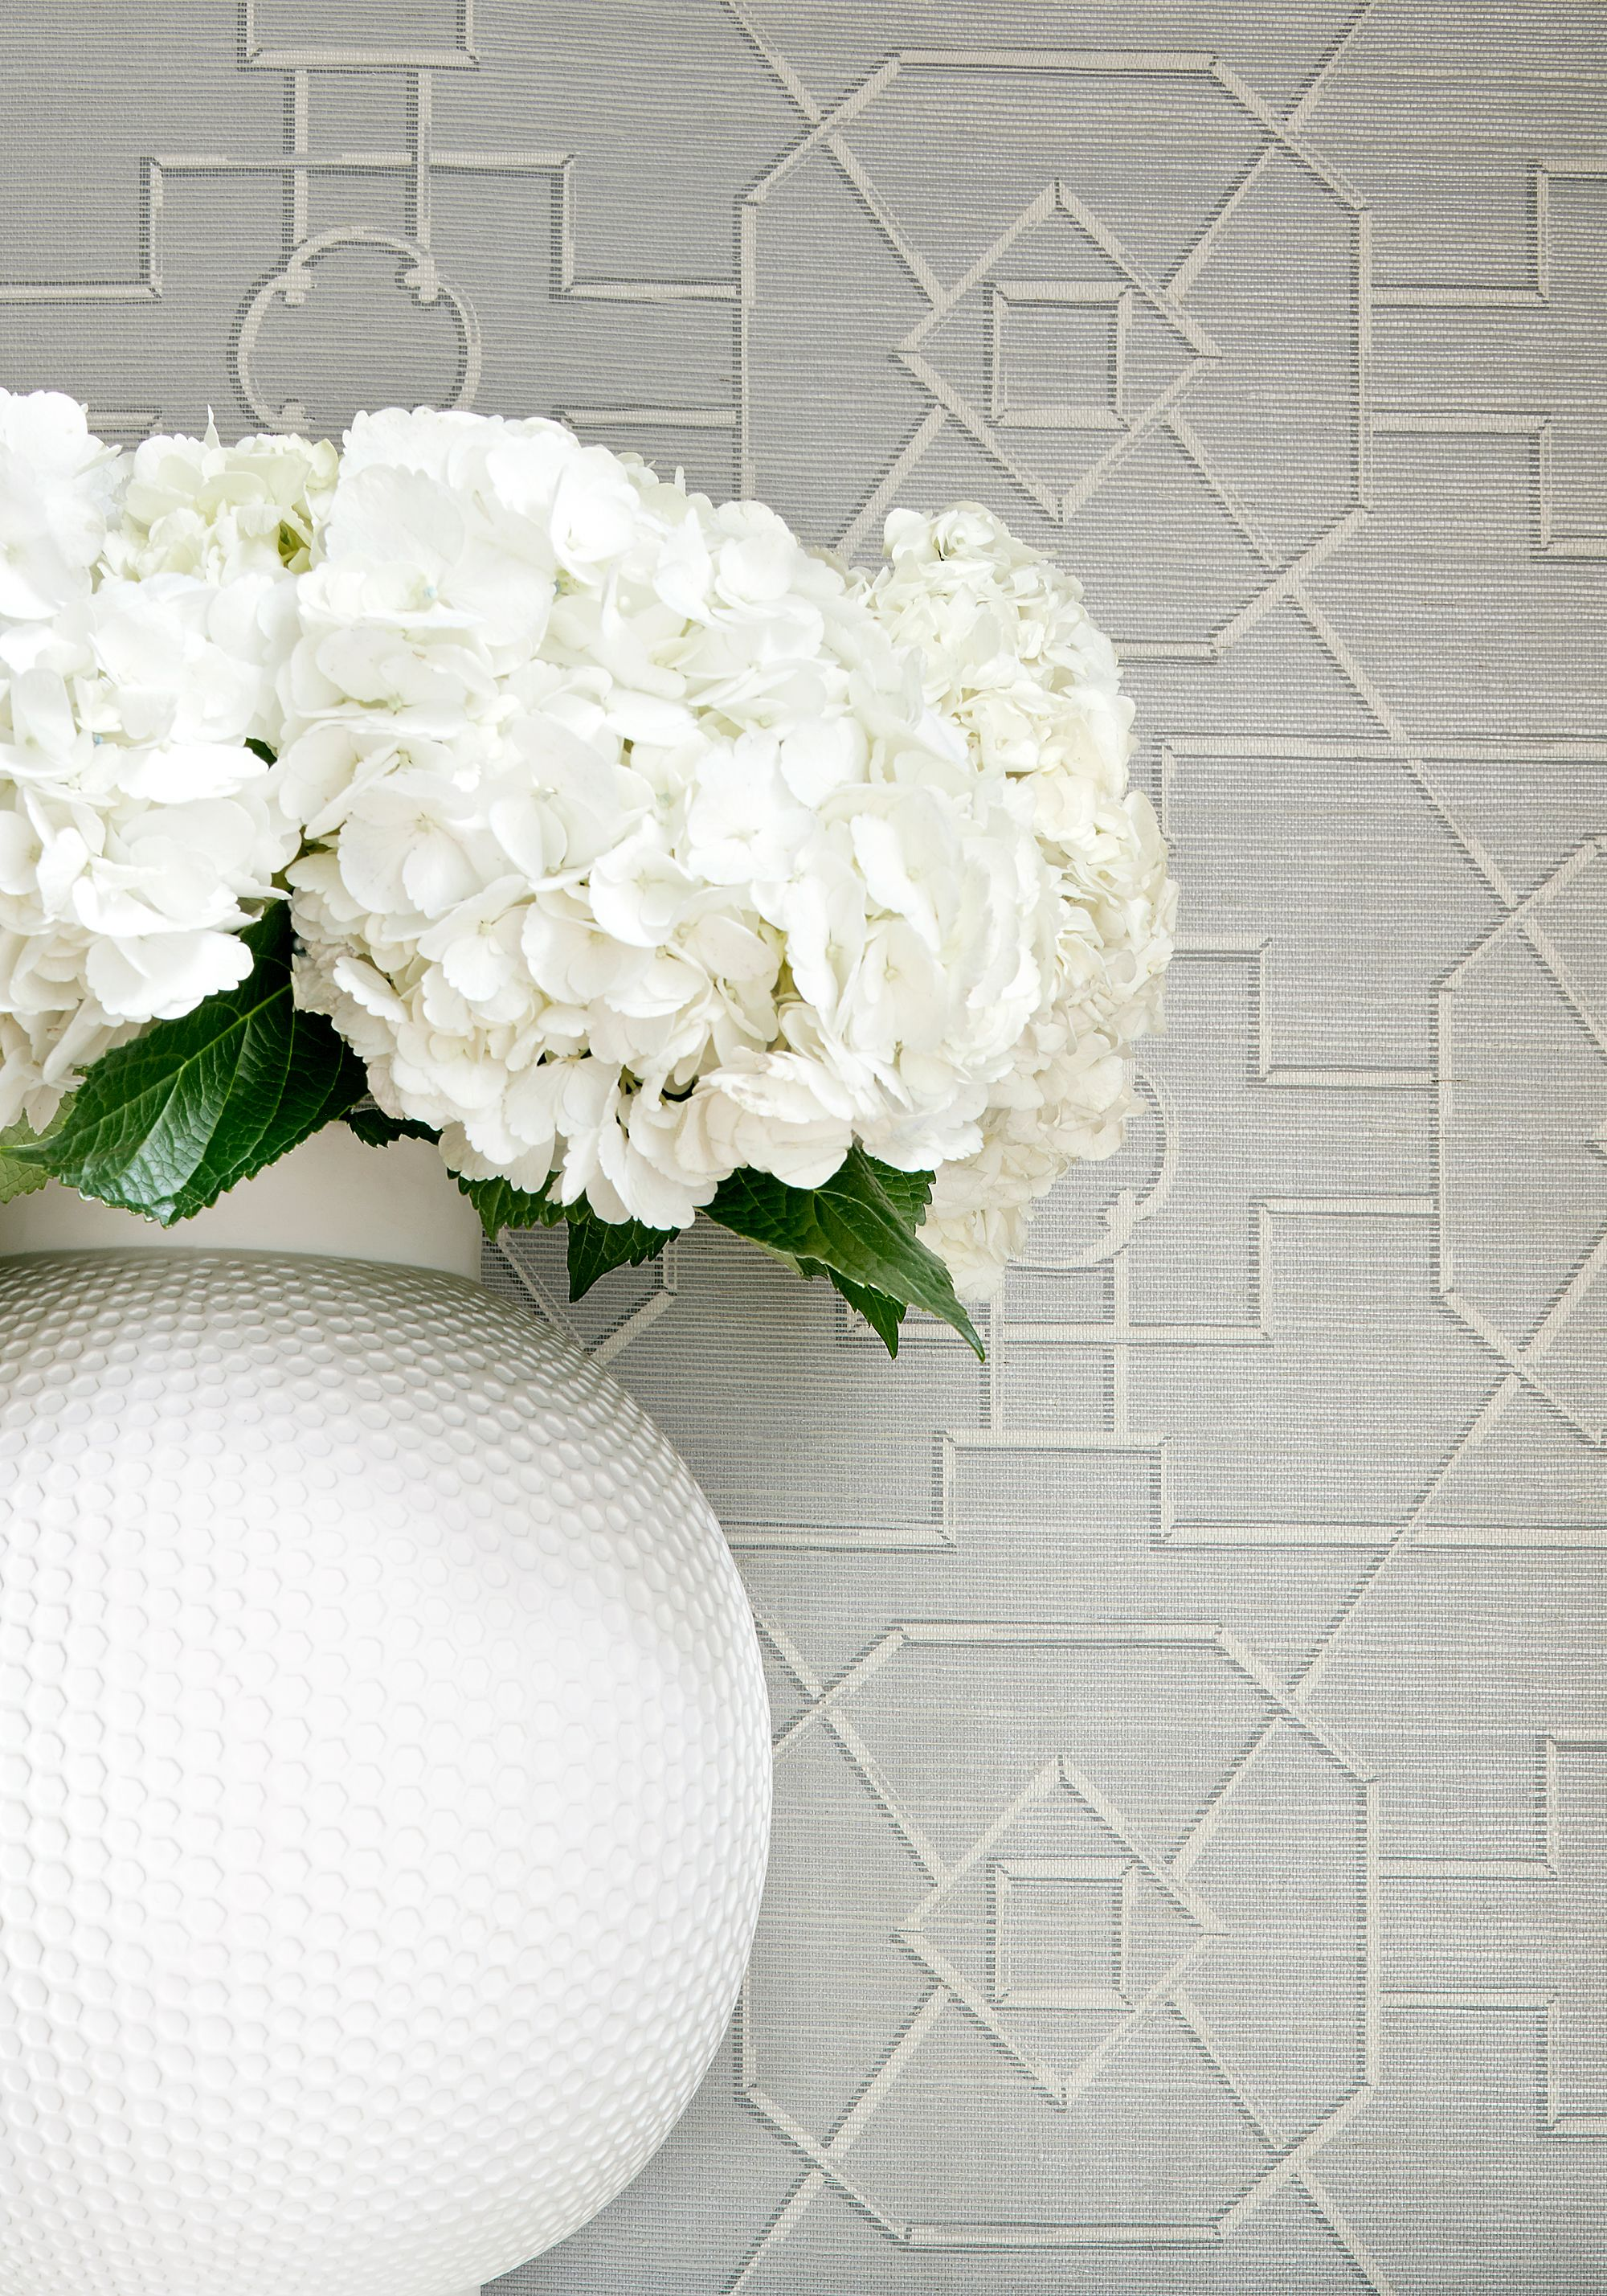 East Gate grasscloth wallpaper in grey from the